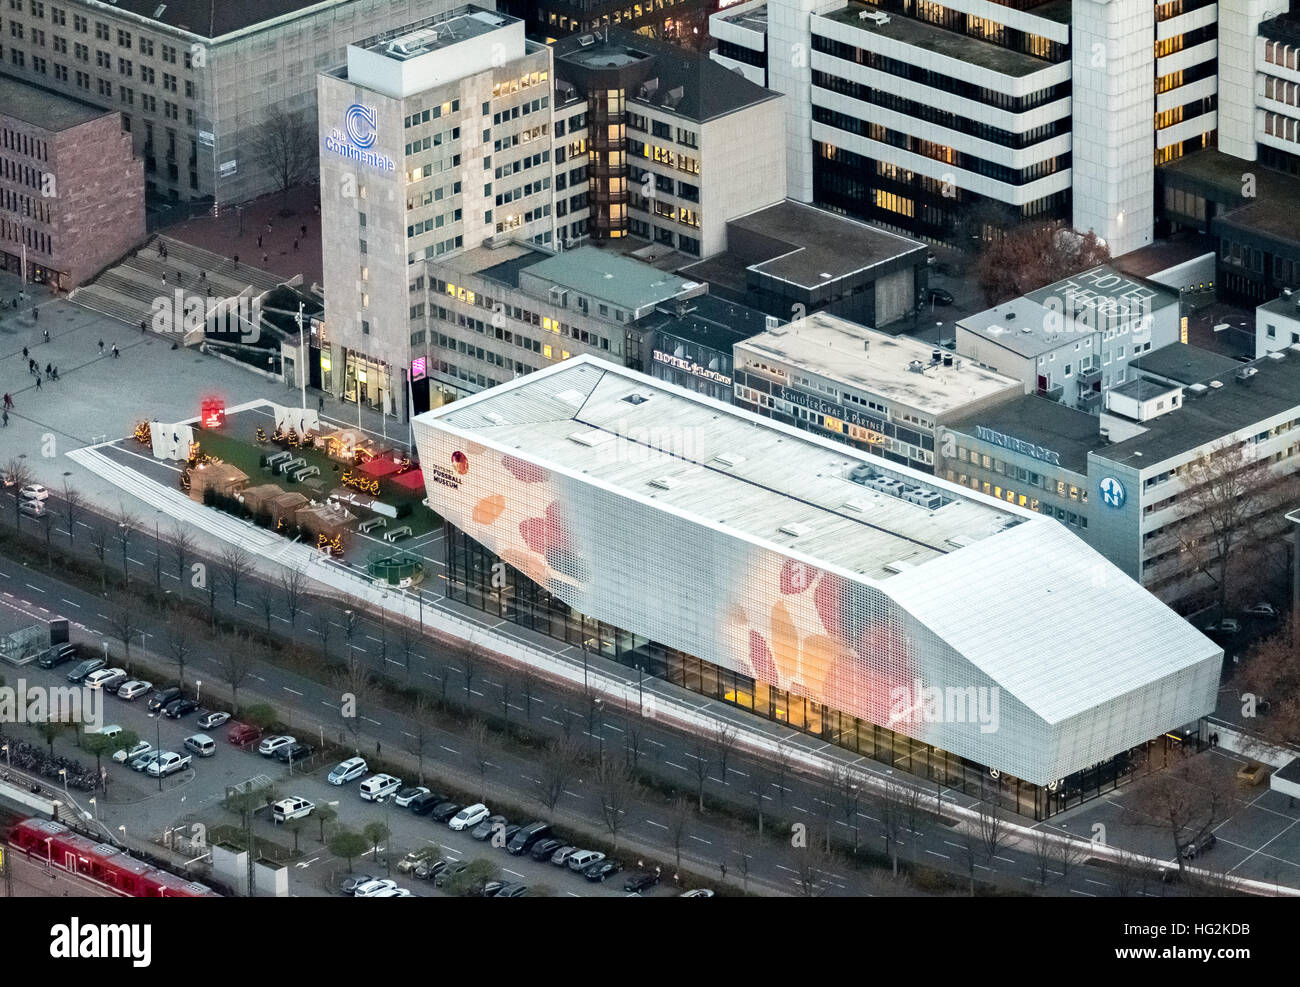 Aerial view, DFB Football Museum Dortmund at night, Football Museum, Dortmund, Ruhr aeria, north rhine-westphalia, Stock Photo